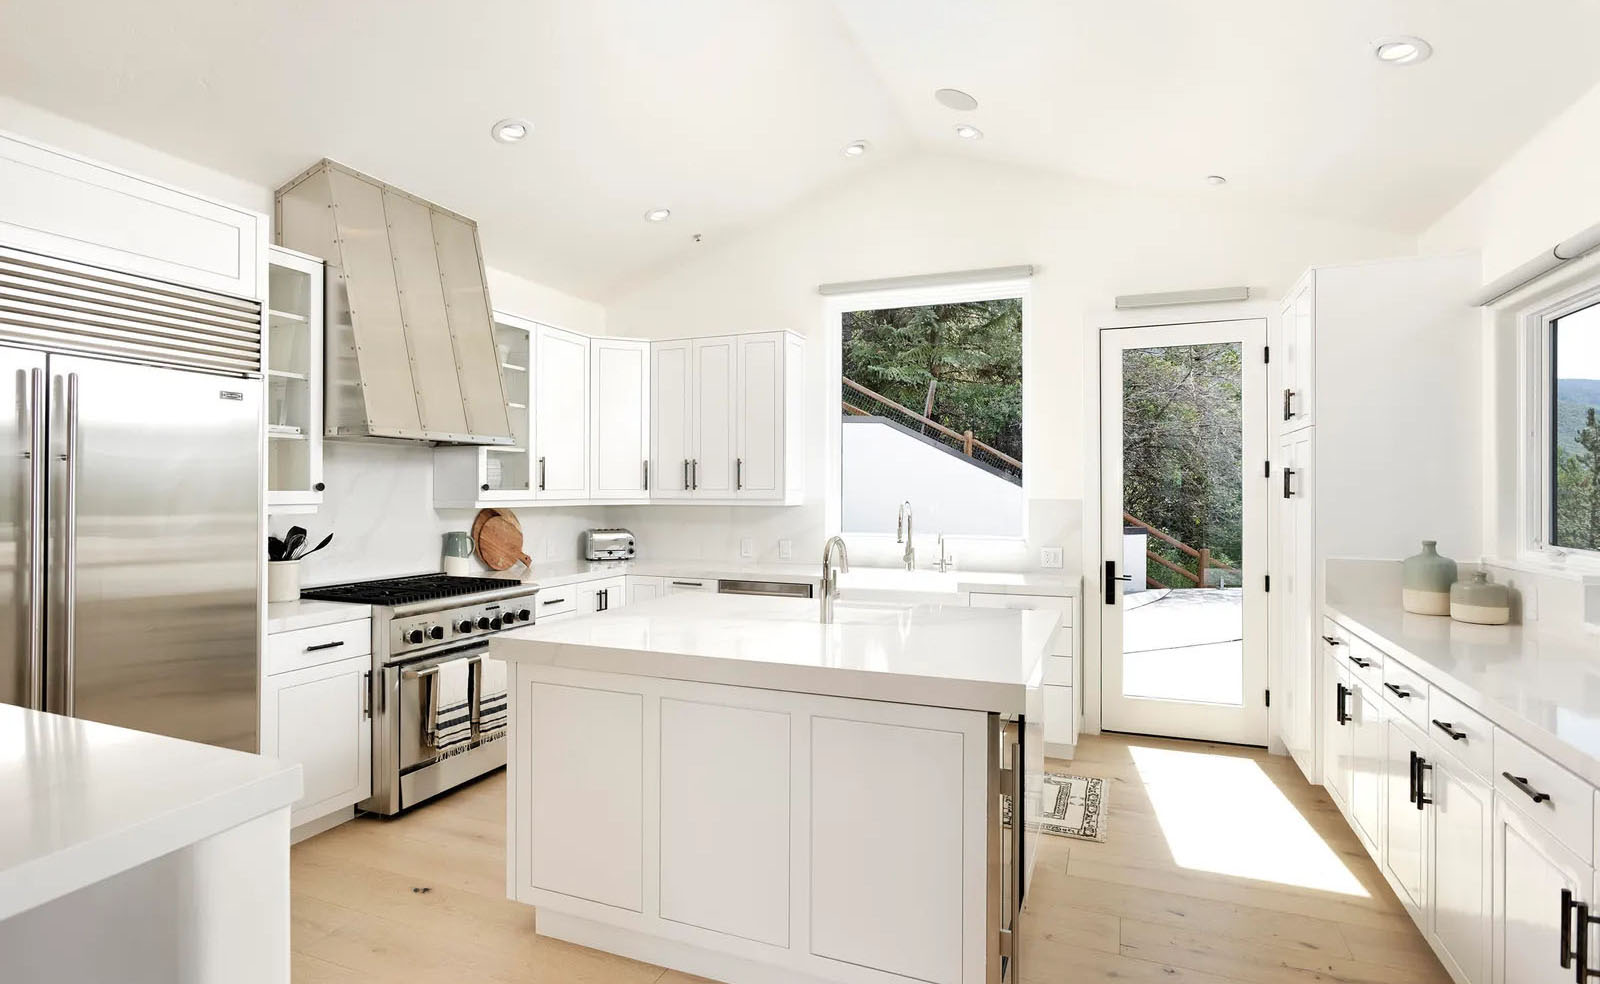 White kitchen cabinets with a custom made range hood.